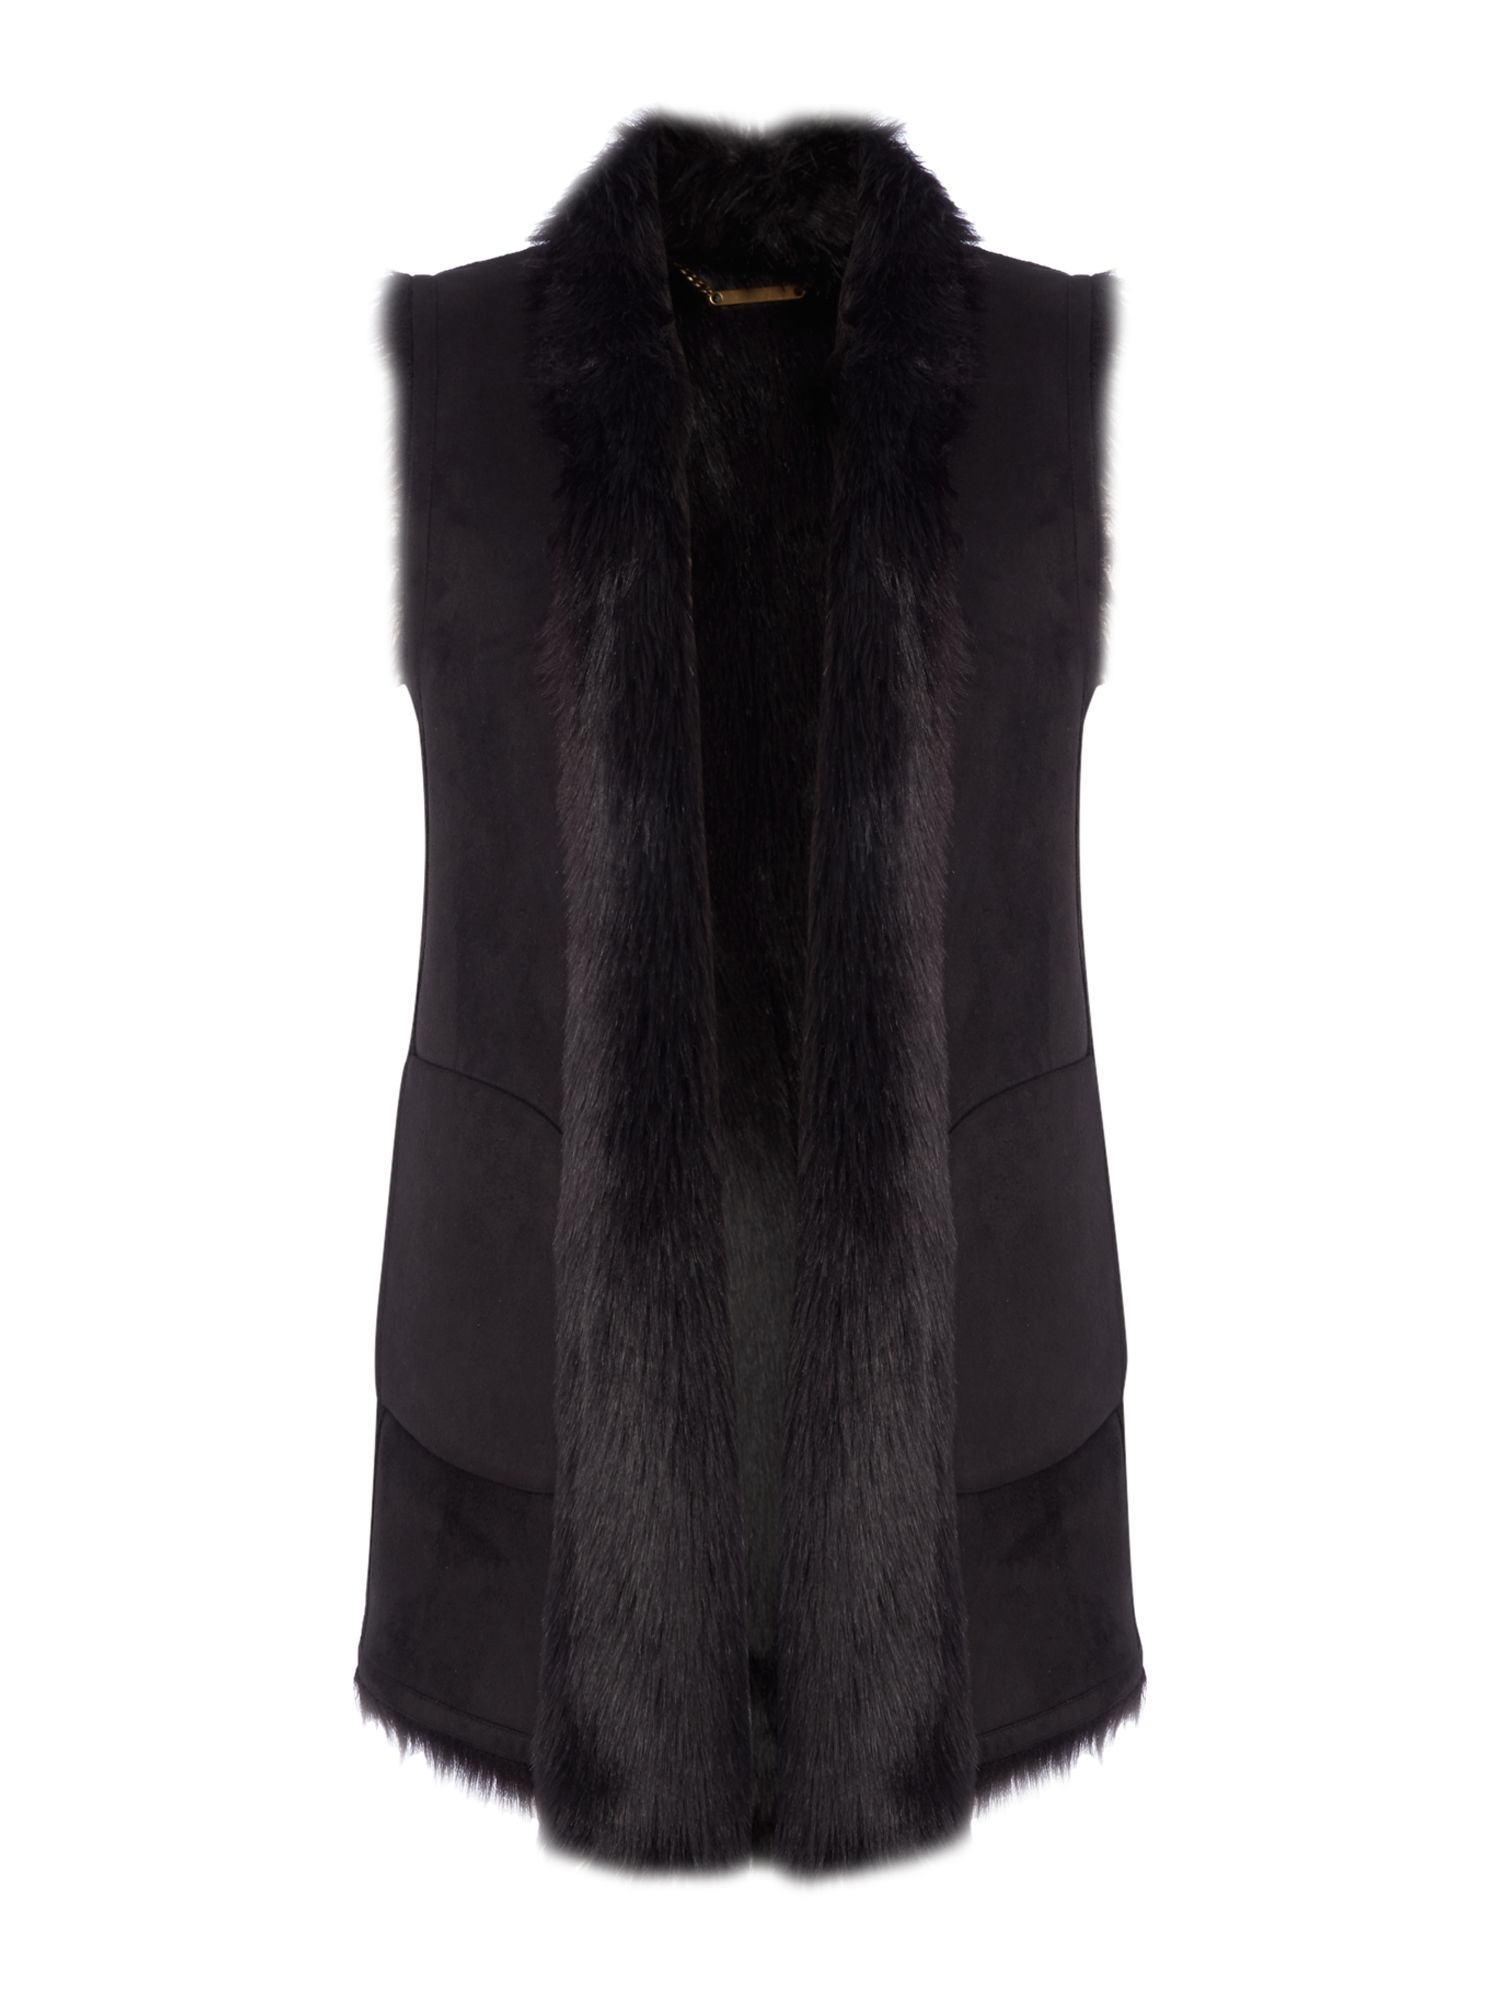 Andrew Marc Faux Shearling Gilet, Black